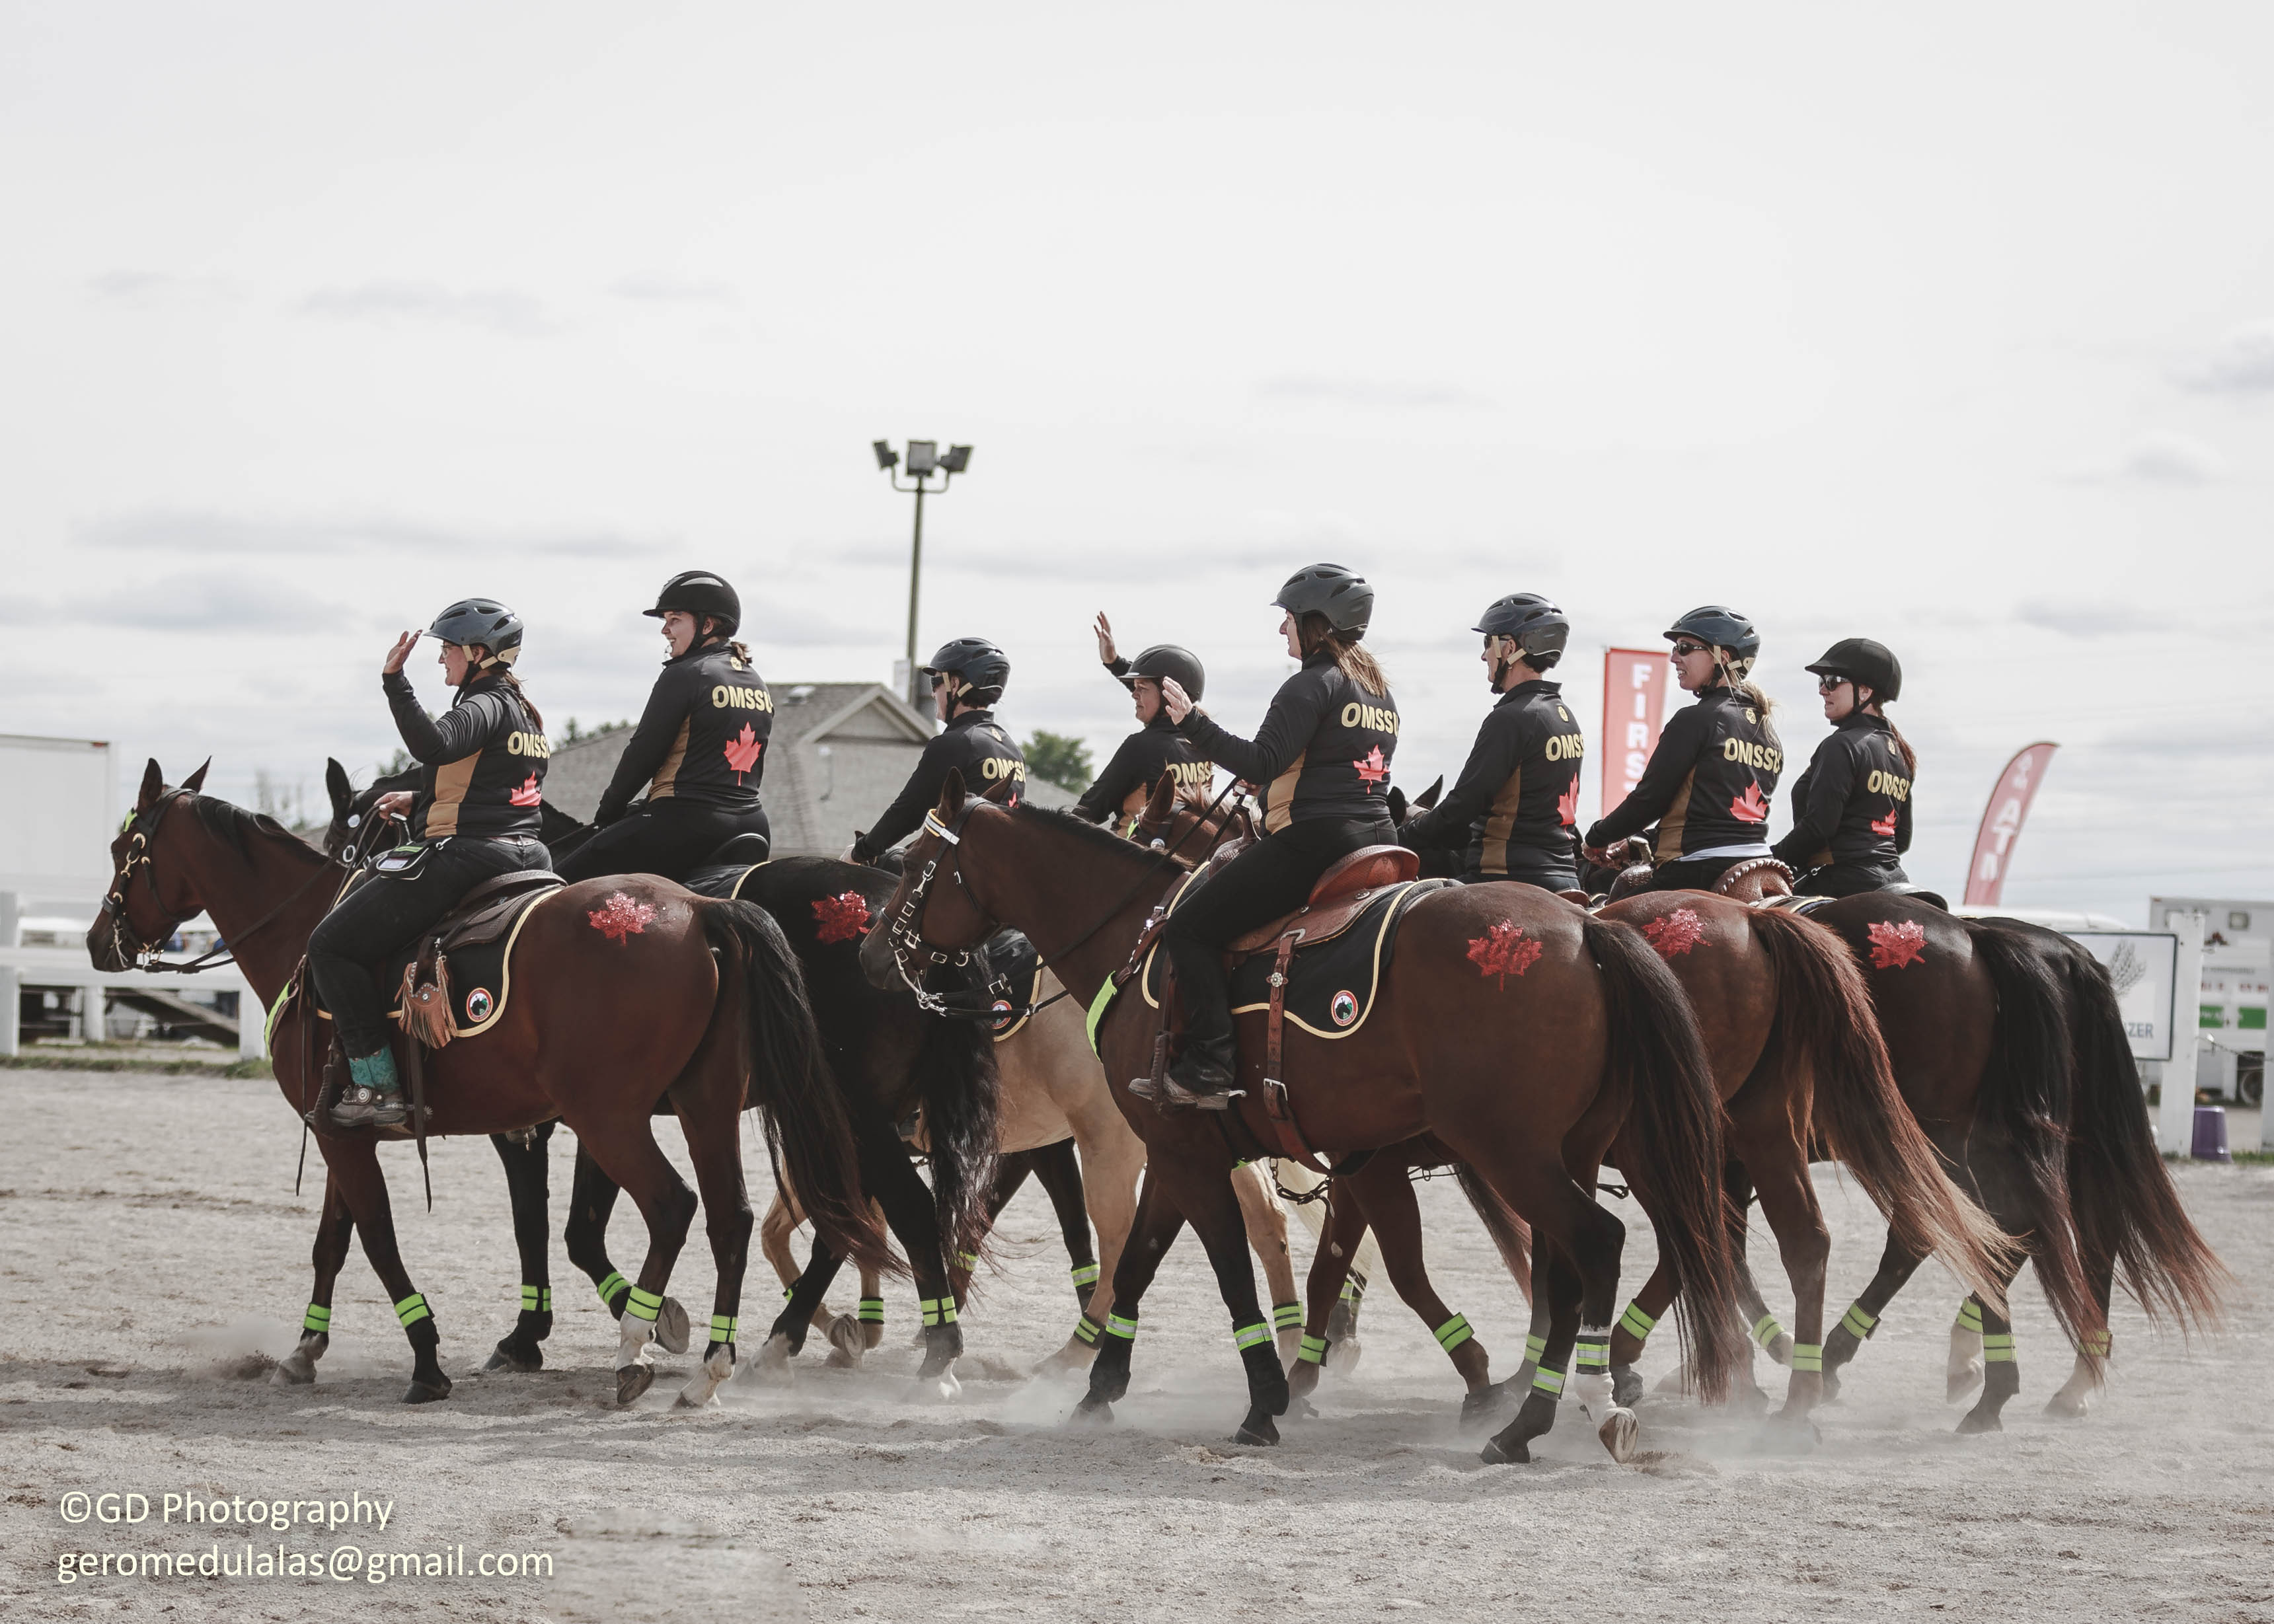 Ontario Mounted Special Services Unit